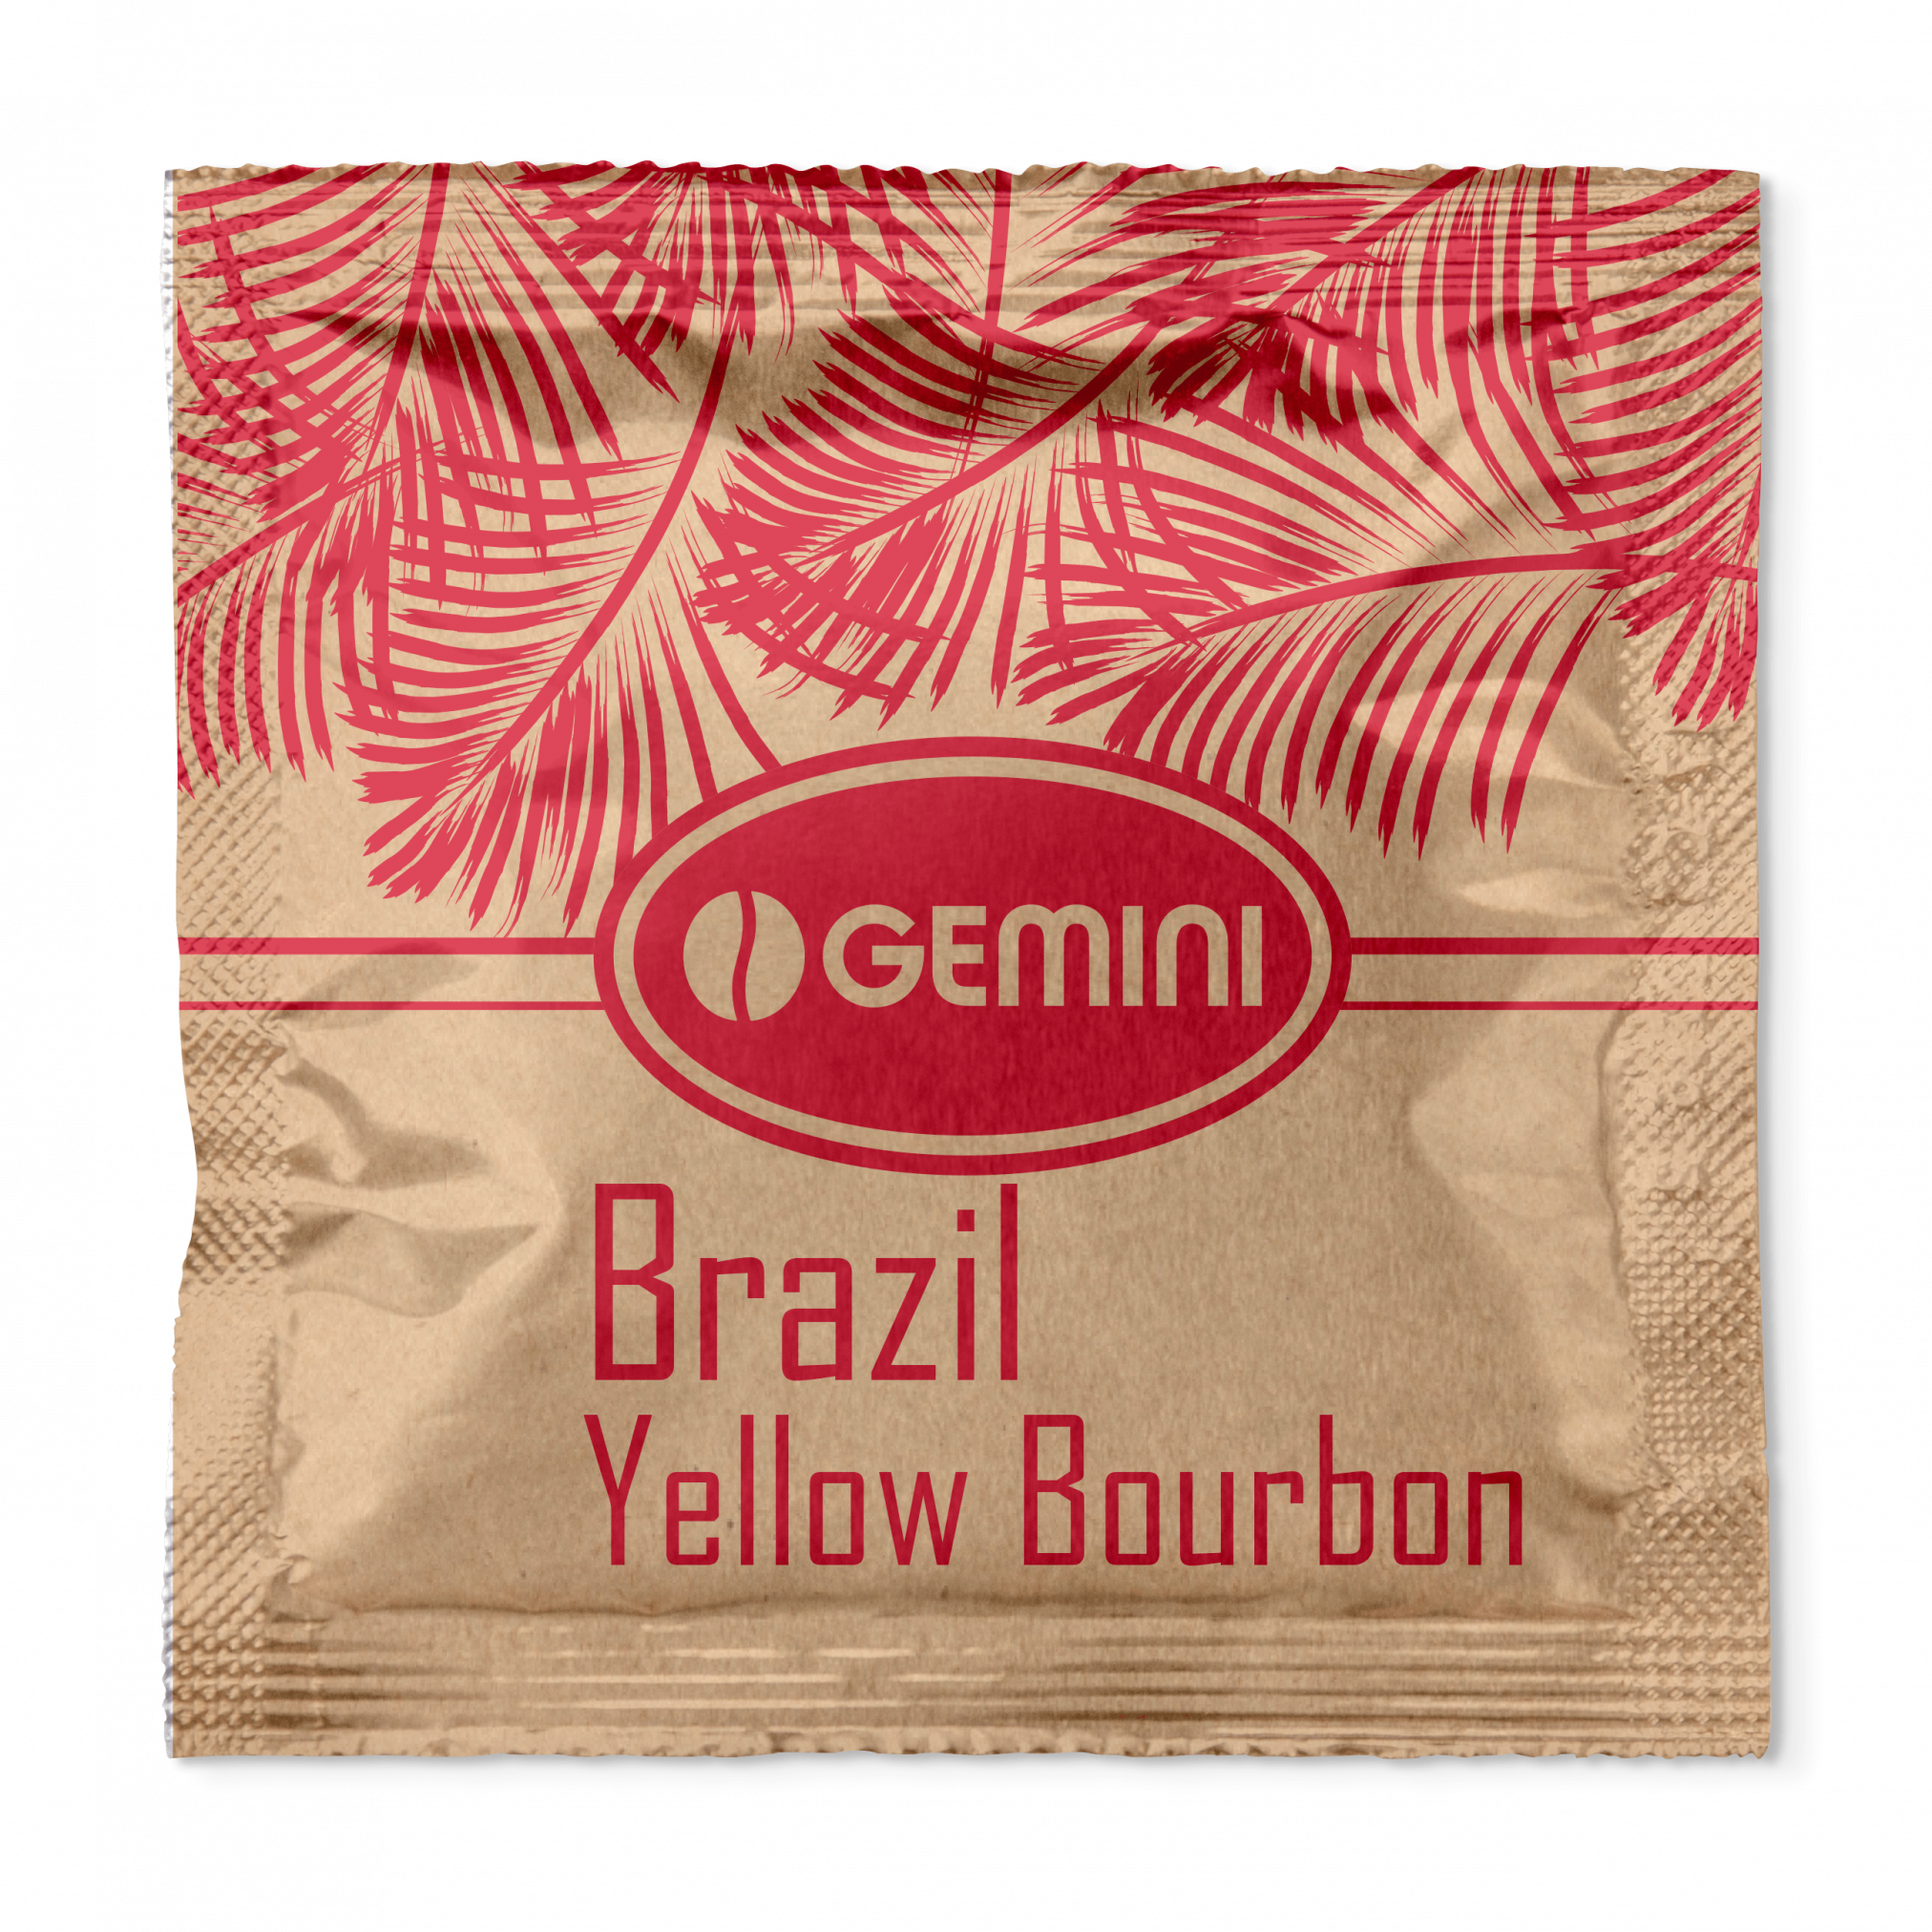 Кофе в чалдах / капсулах - Чалда Brazil Yellow Bourbon